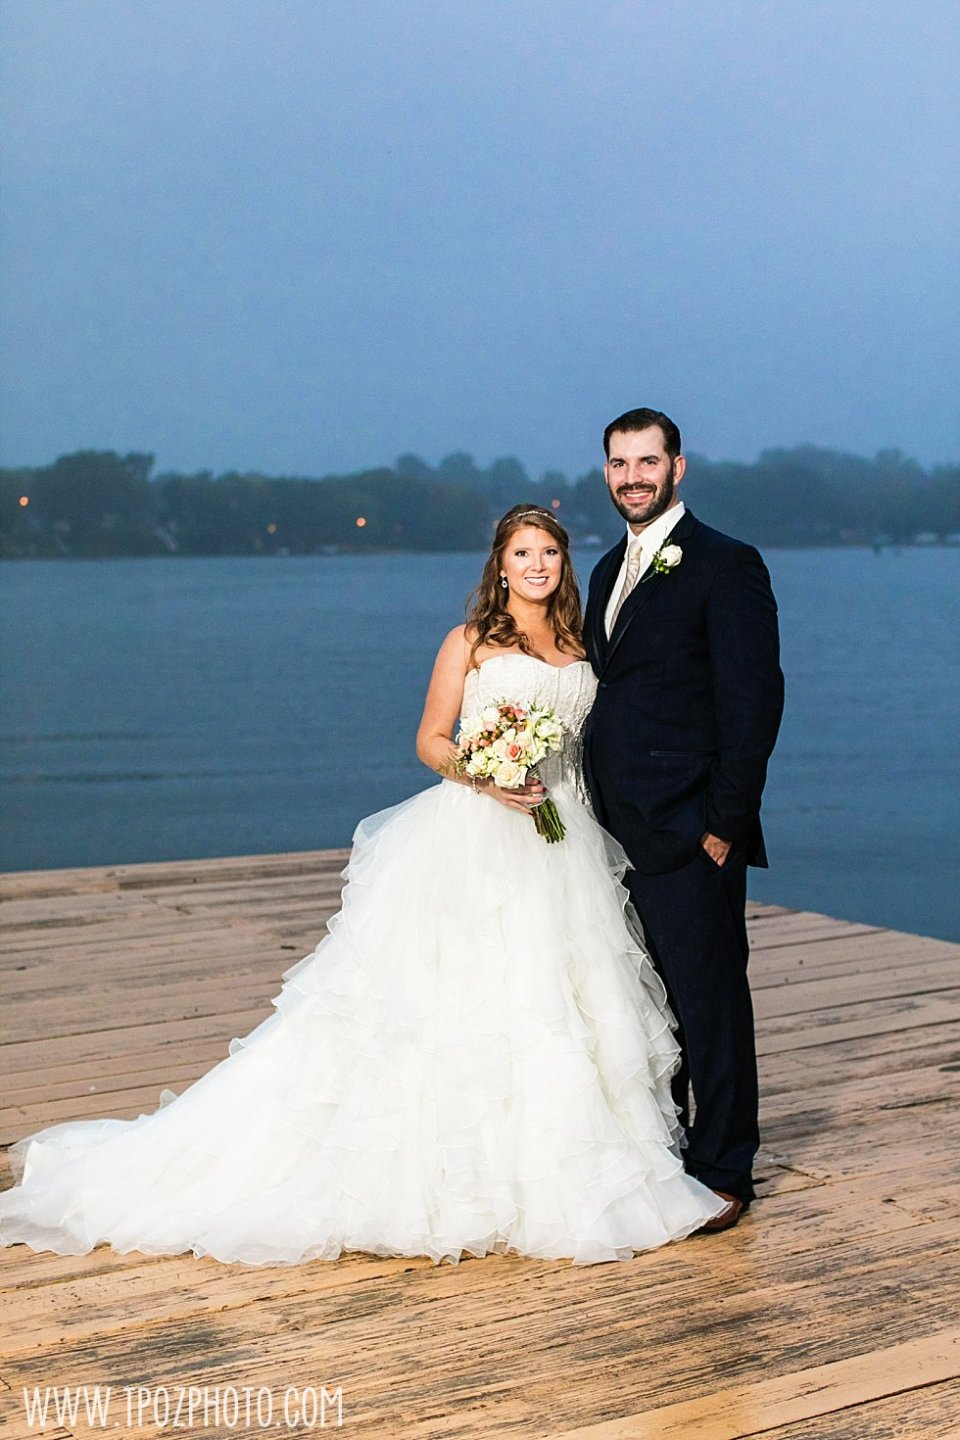 Rainy Wedding at Bleue's on the Water || tPoz Photography || www.tpozphoto.com